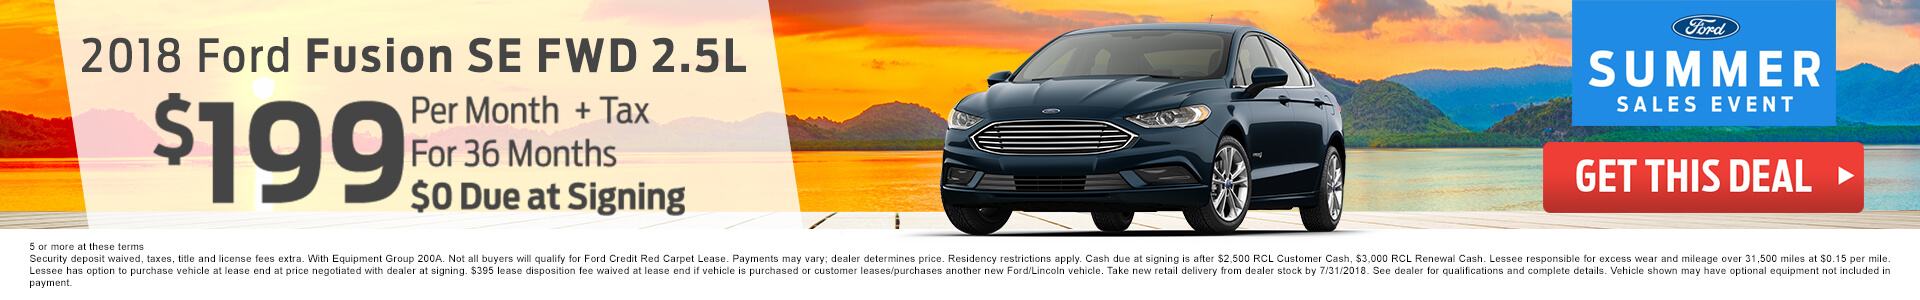 2018 Ford Fusion $199